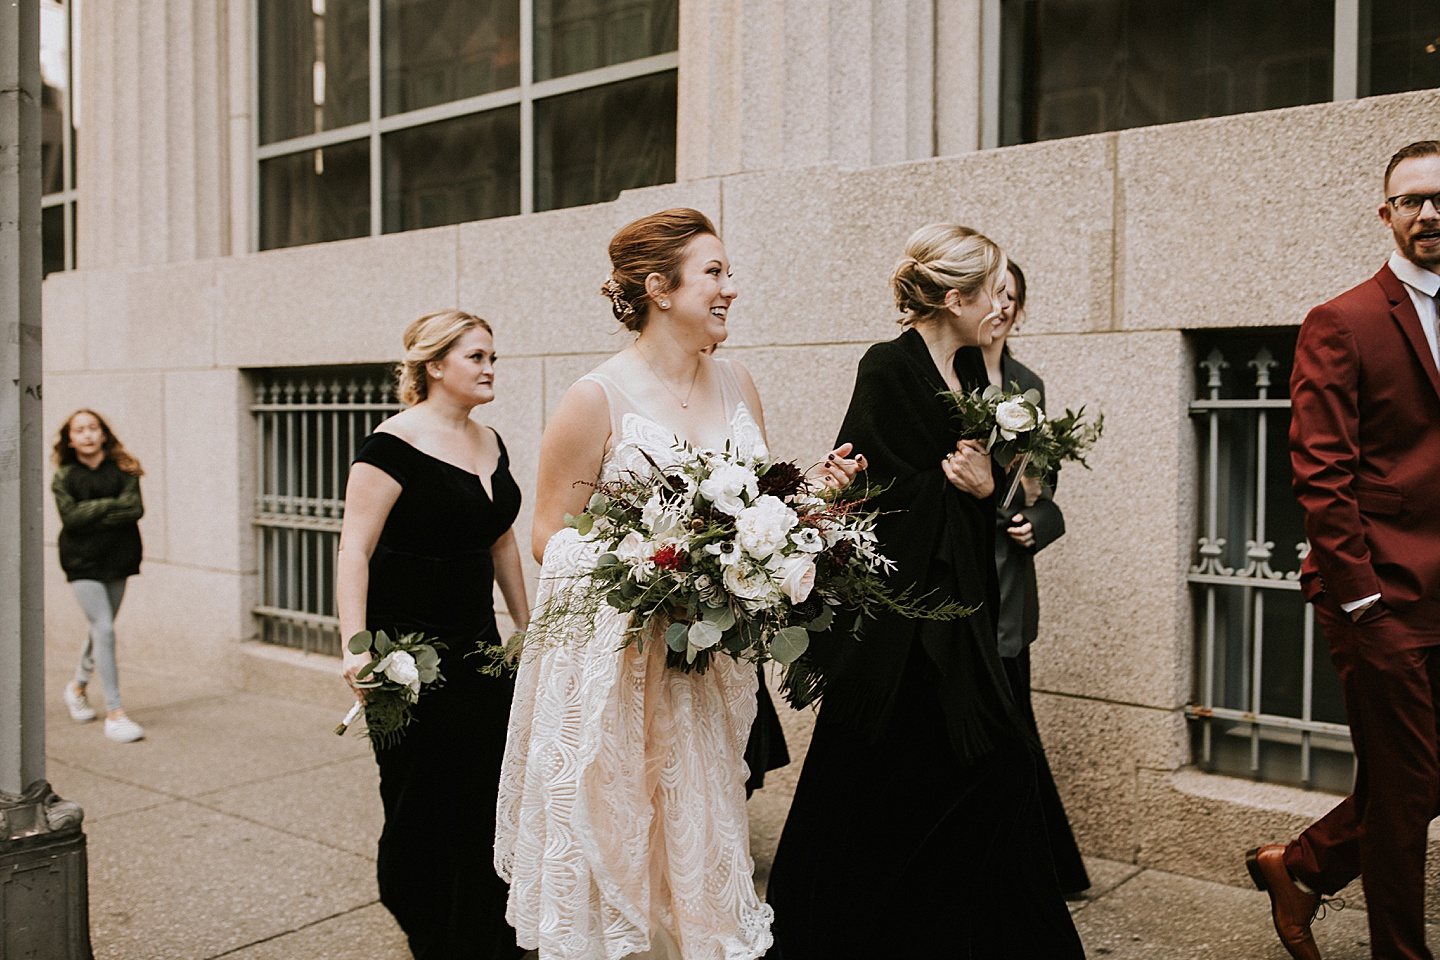 Bridal party walking downtown